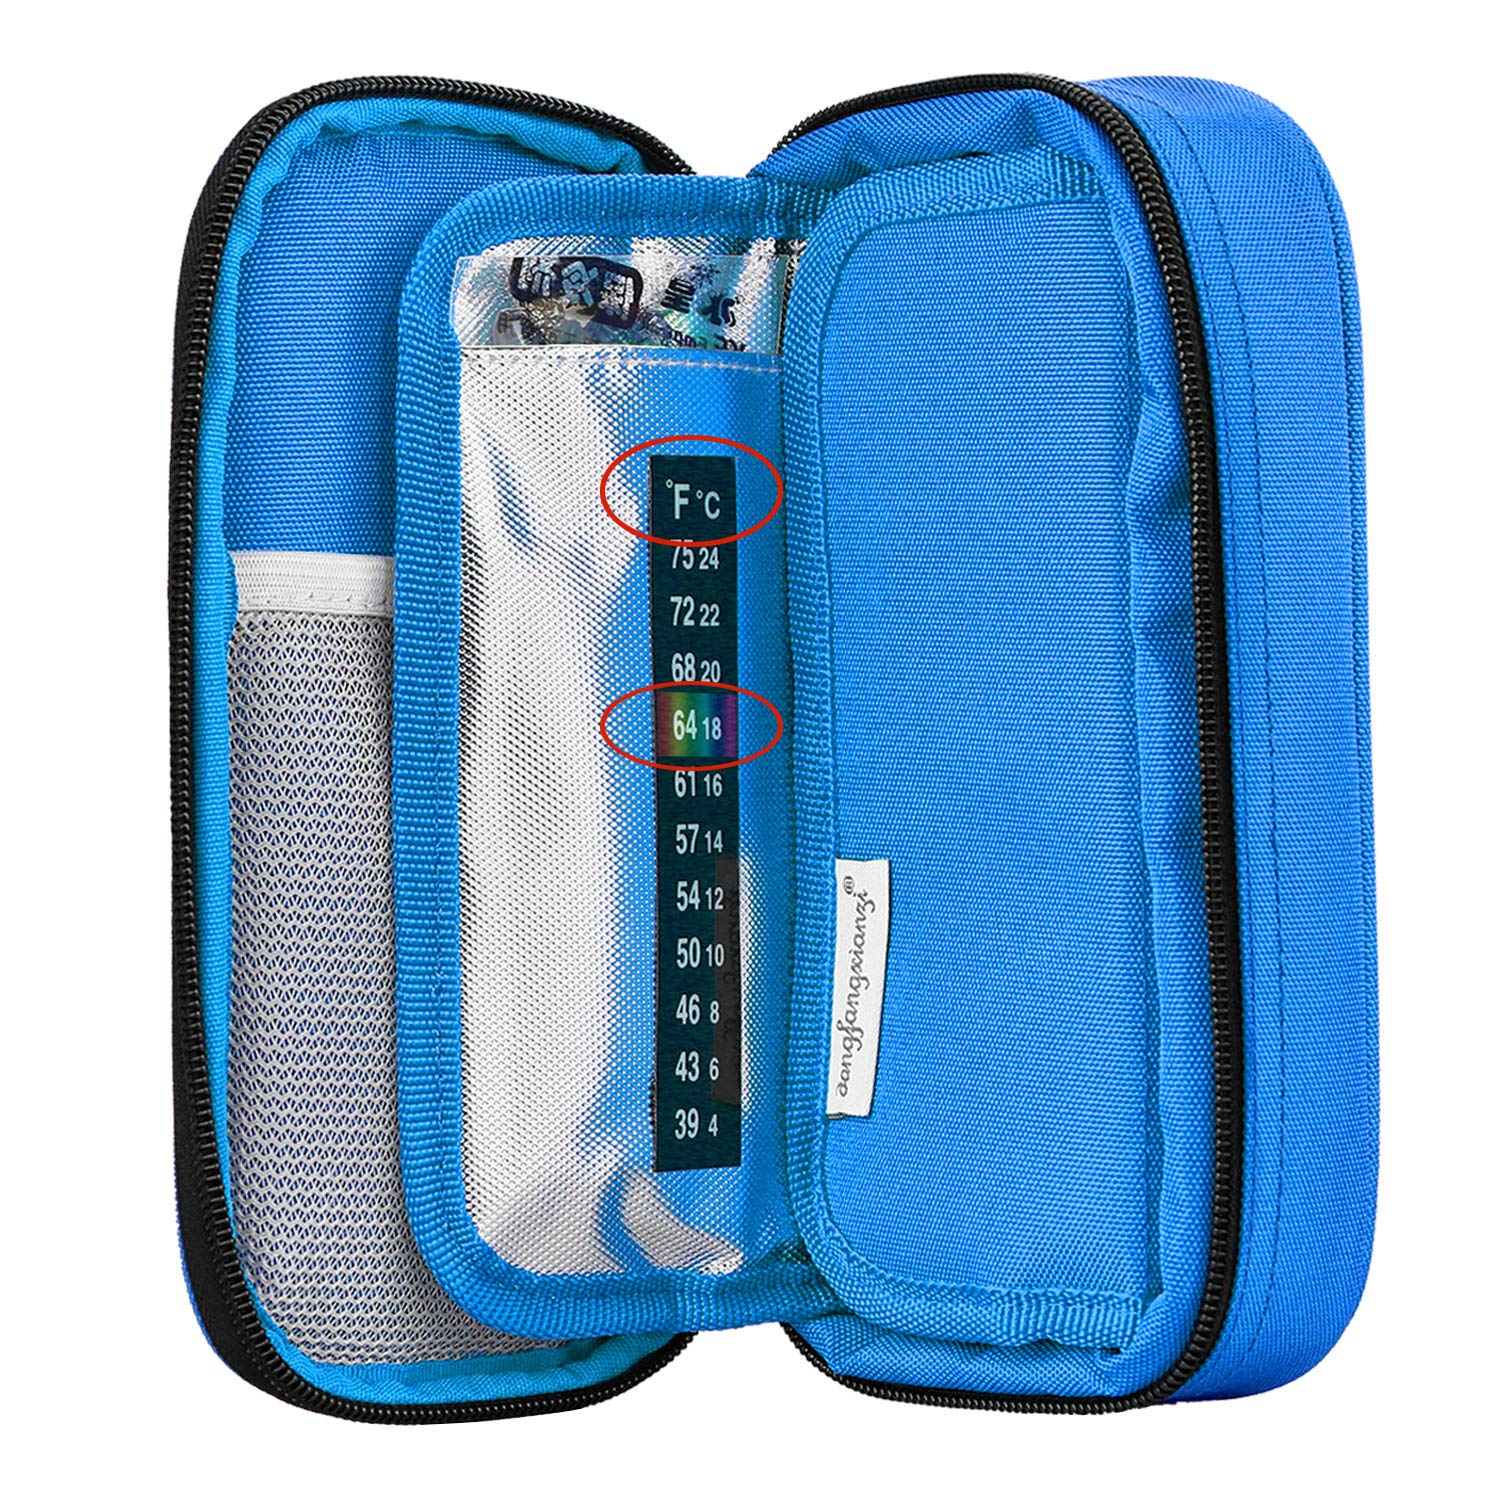 Medication Diabetic Insulated Organizer Portable Cooling Bag for Insulin Pen and Diabetic Supplies with 2 Cooler Ice Pack Purple YOUSHARES Insulin Cooler Travel Case